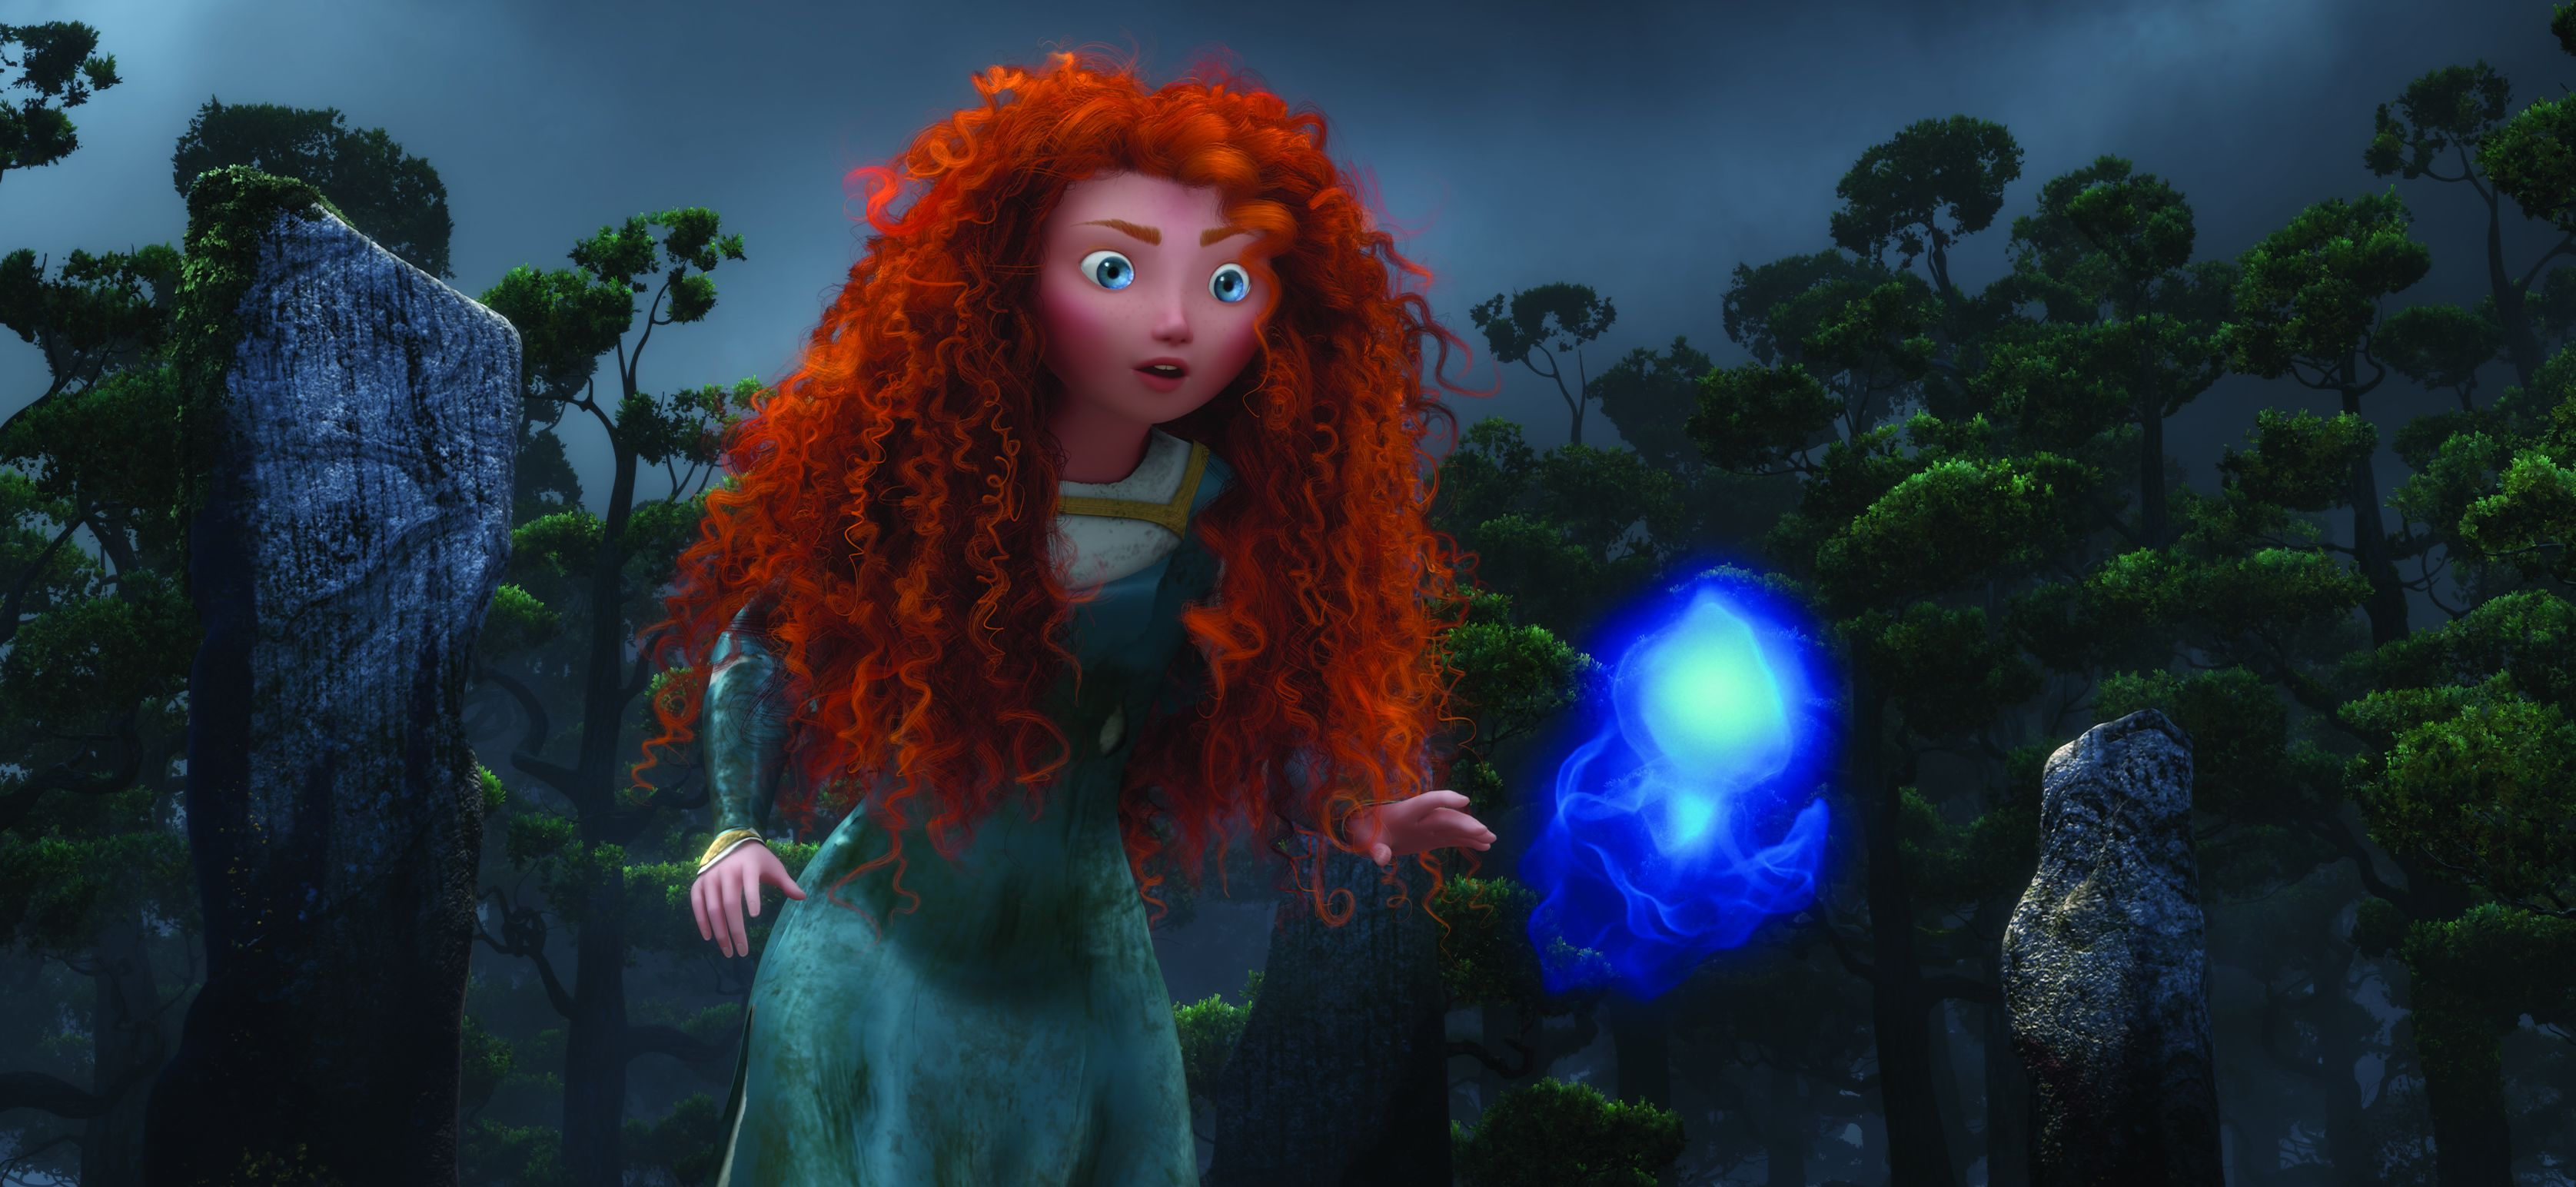 Merida and the blue Wisp in Brave